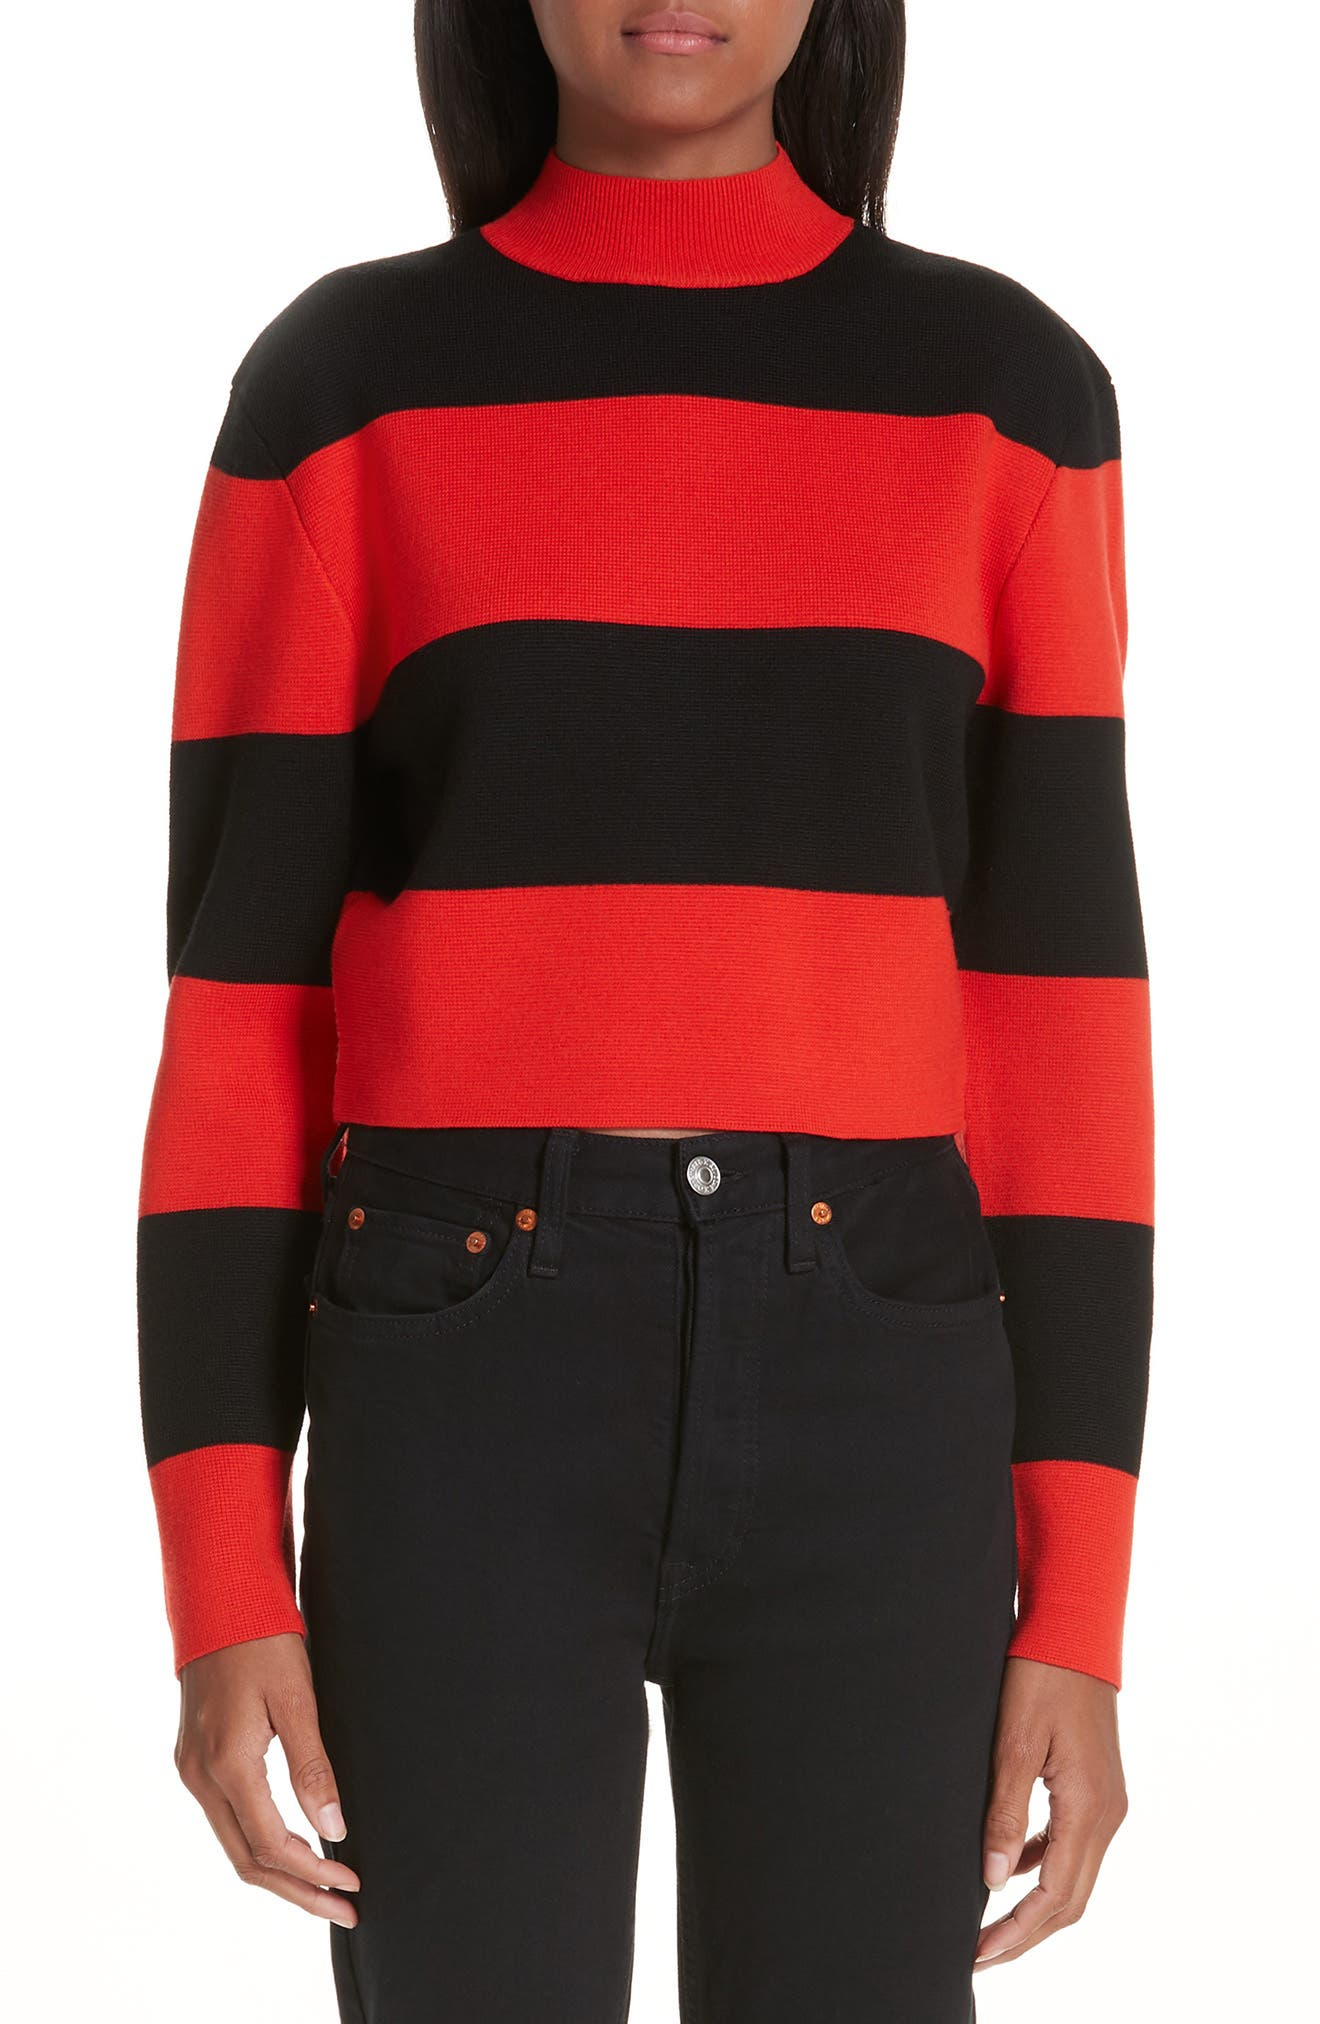 VICTOR GLEMAUD Stripe Wool Sweater in Red And Black Combo